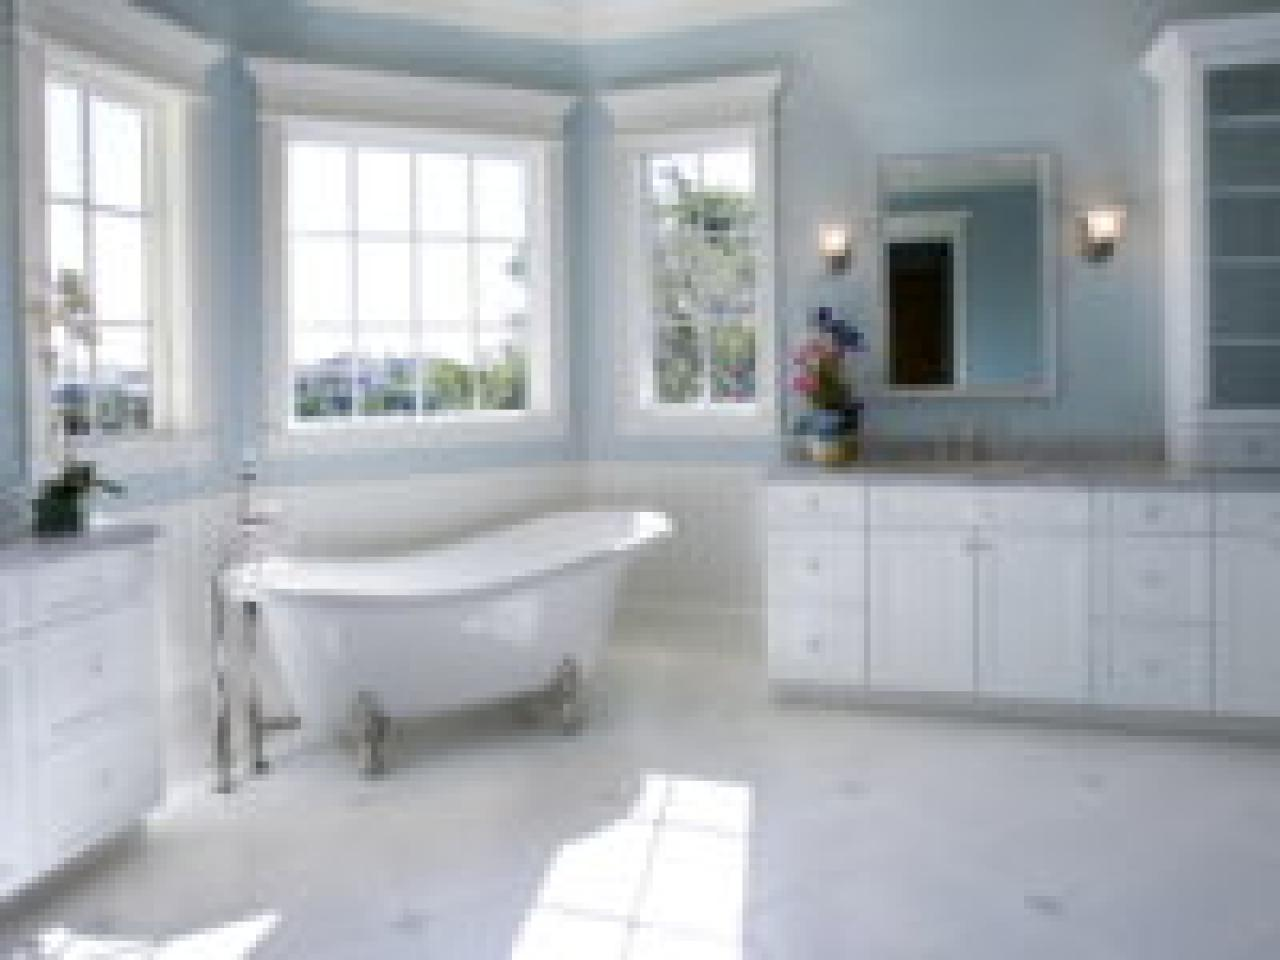 Exceptional Related To: Bathroom Remodel Bathrooms Remodeling. Find_Inspiration_bathrk_1